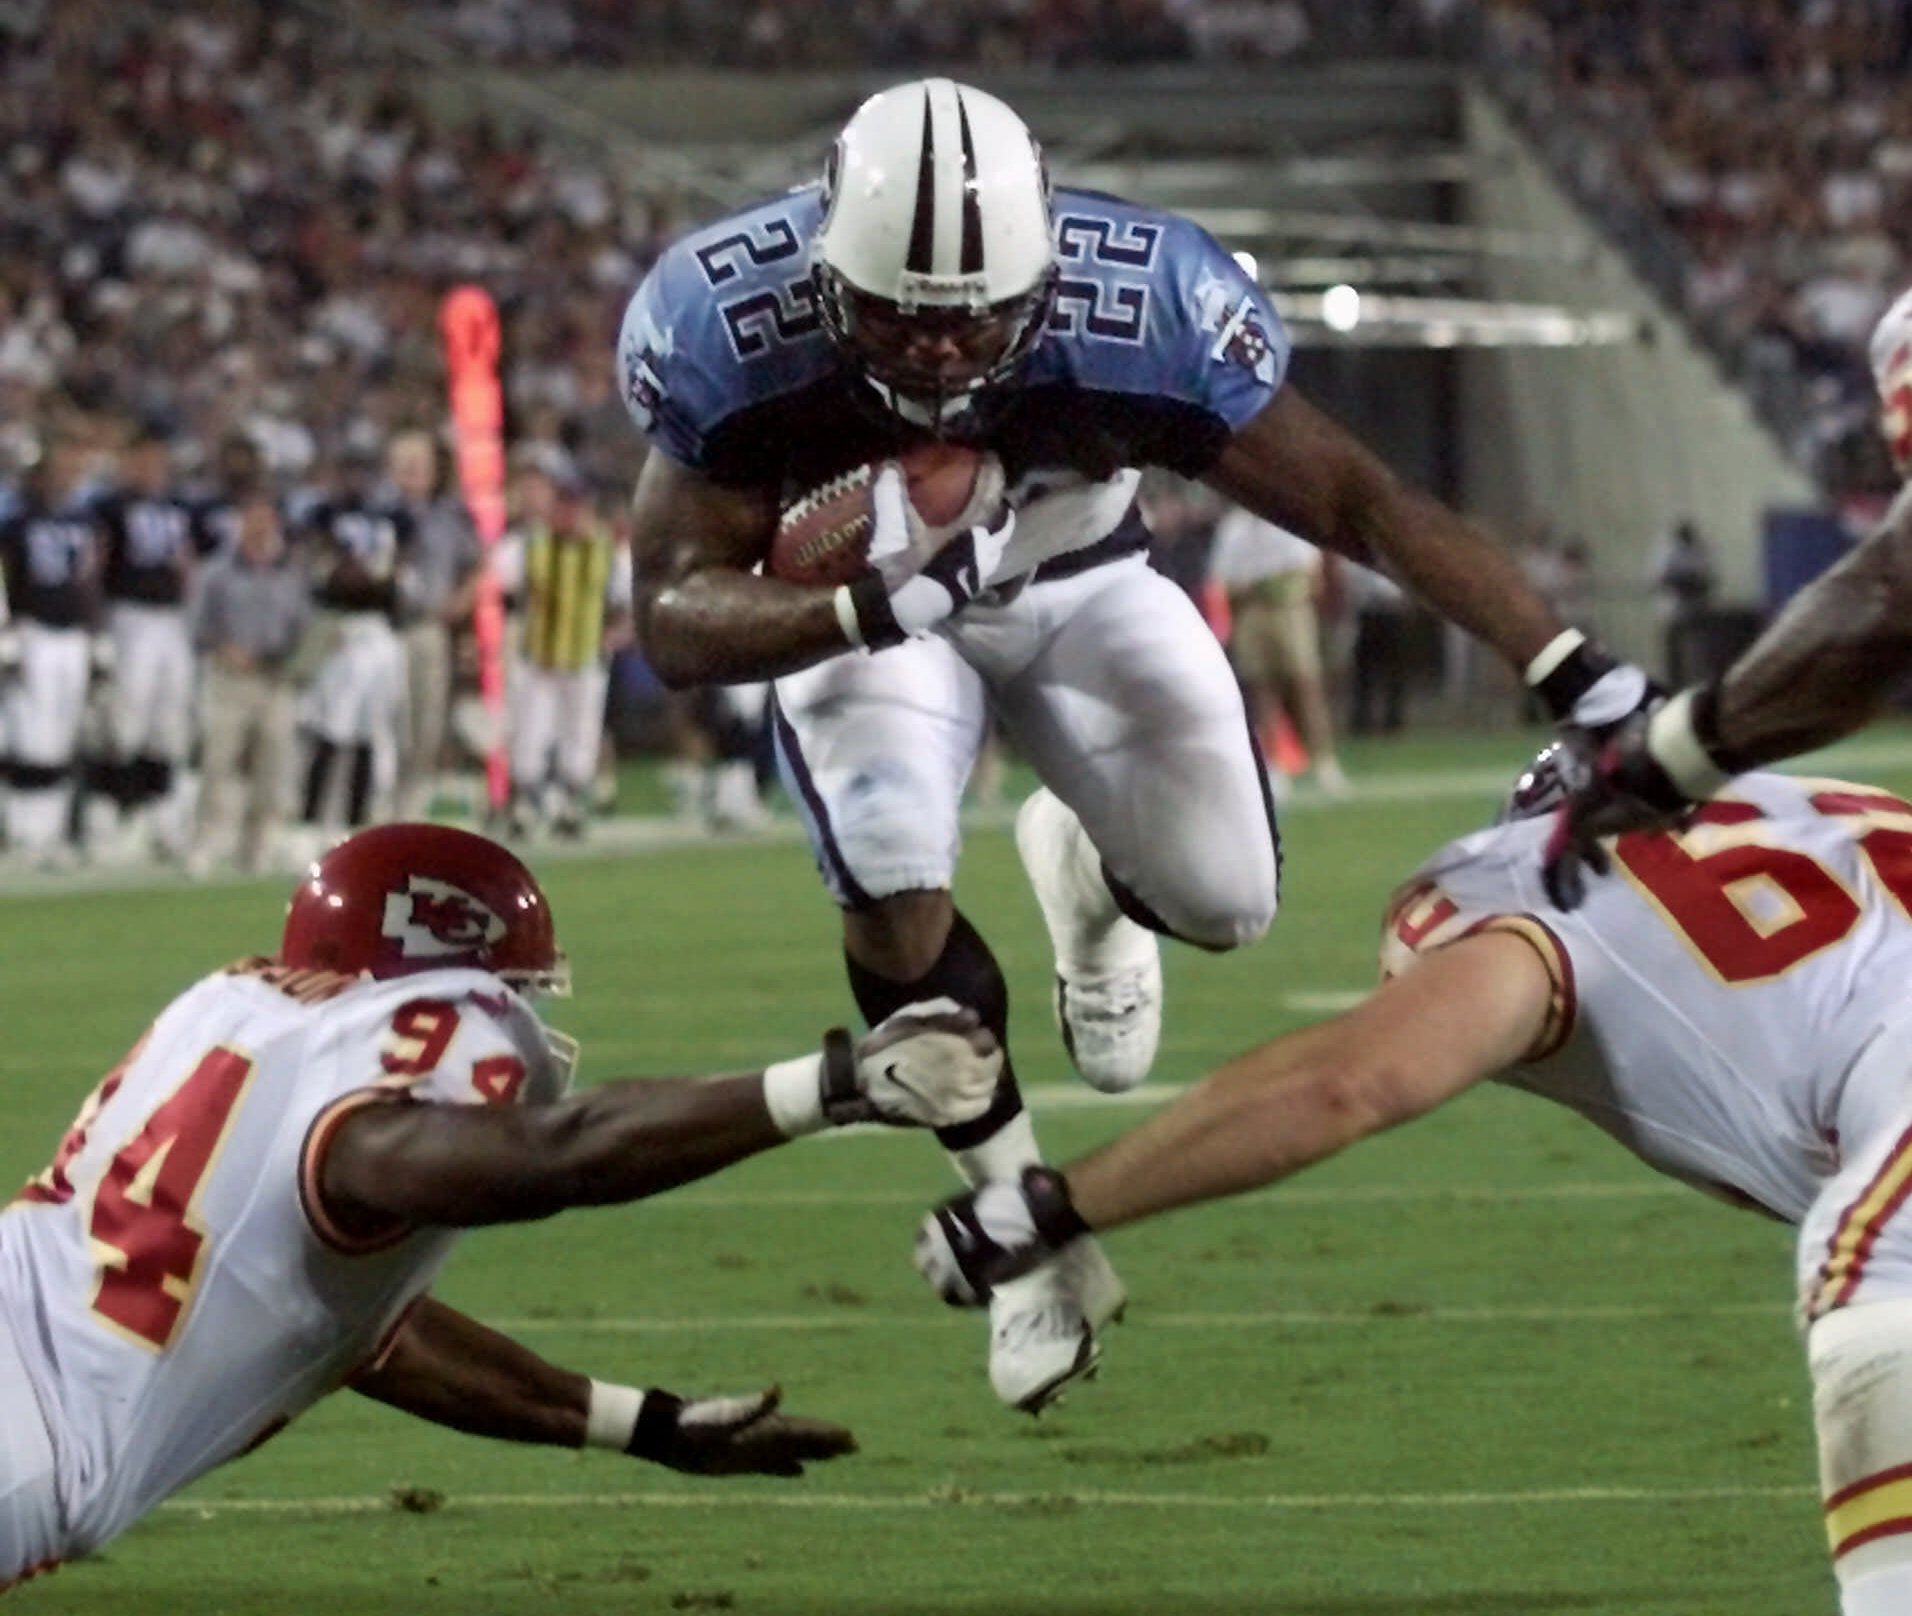 Tennessee Titans running back Rodney Thomas (22) jumps between Kansas City Chiefs defenders Jonathan Jackson (94) and Kevin Sluder (62) to score a touchdown in the second quarter in Nashville, Tenn., on Saturday, Aug. 5, 2000